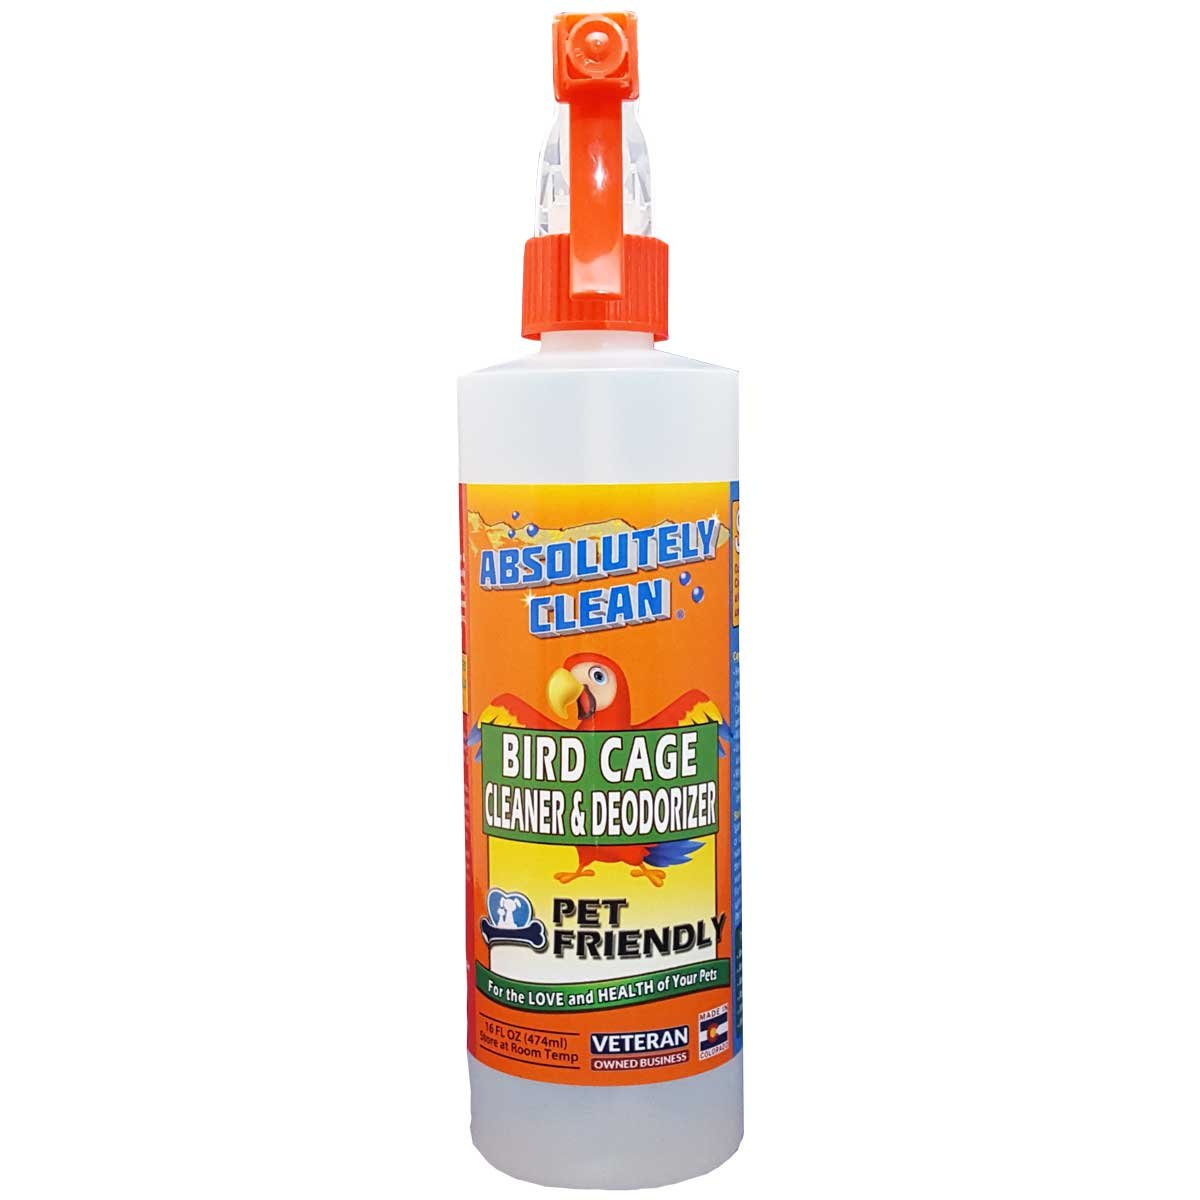 Absolutely Clean Amazing Bird Cage Cleaner and Deodorizer - Just Spray/Wipe - Safely & Easily Removes Bird Messes Quickly and Easily - Veterinarian Approved - Made in the USA